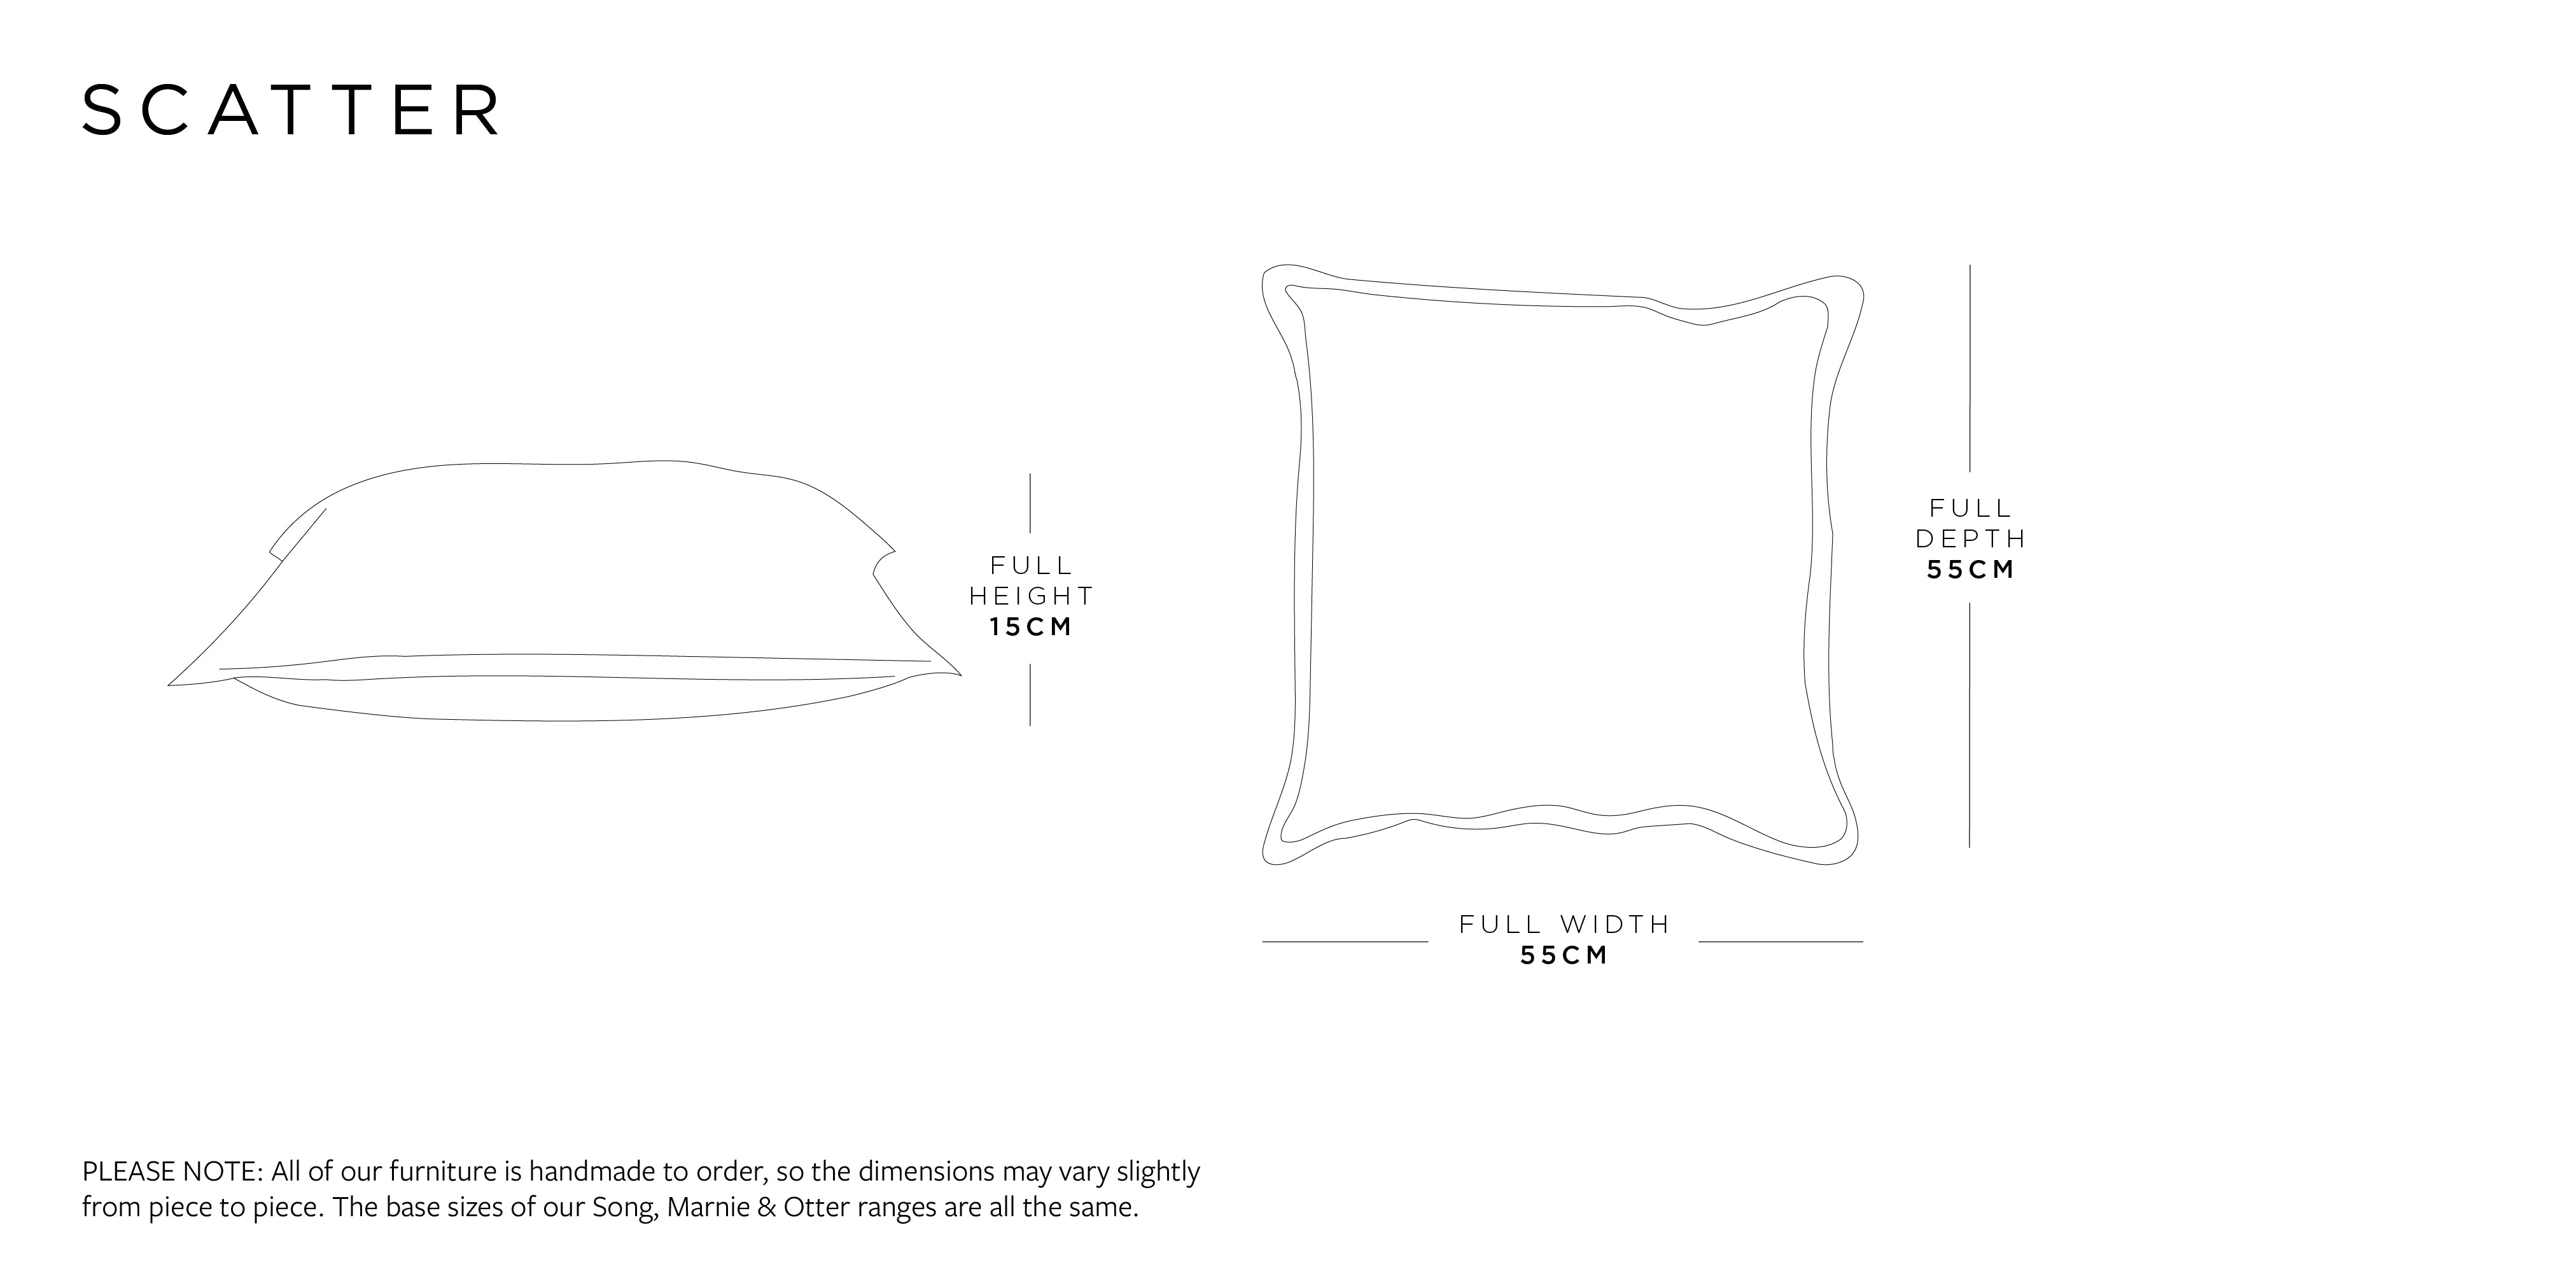 Scatter Cushion Dimensions